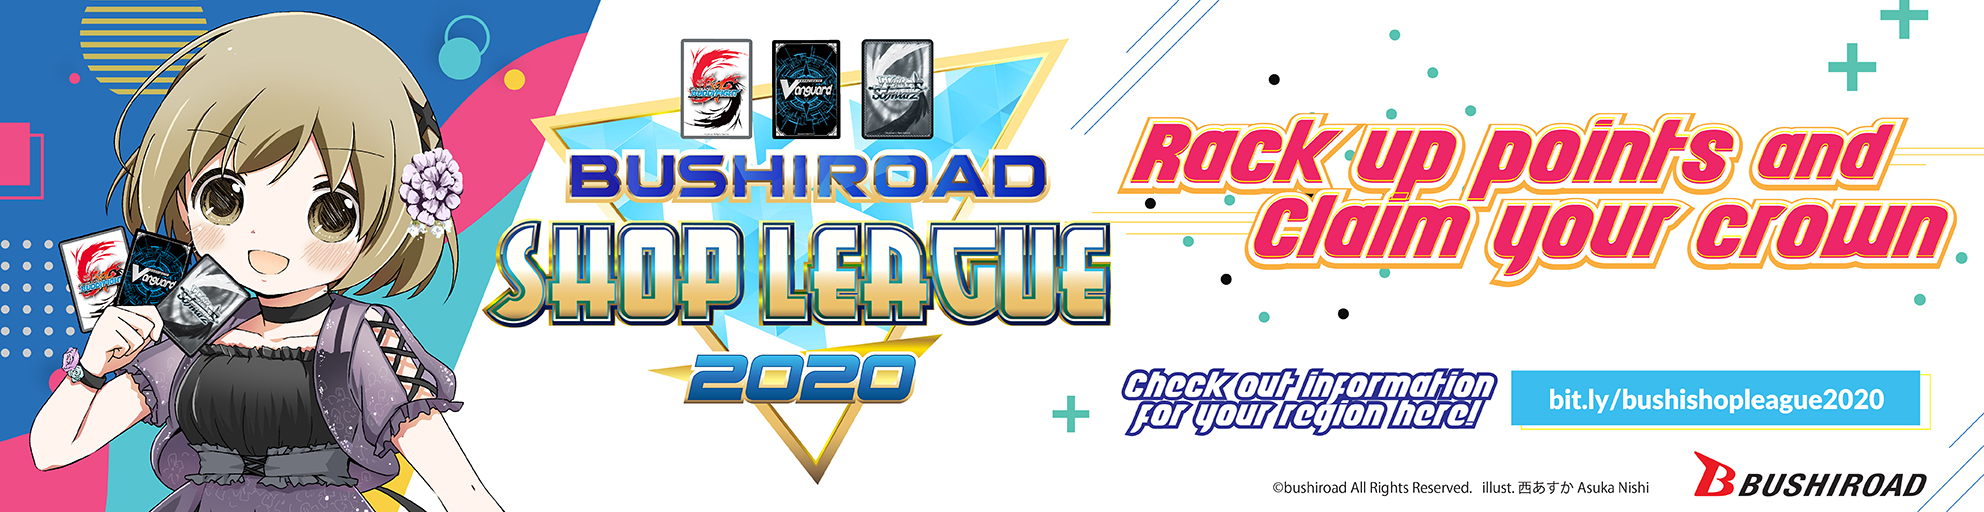 Bushiroad_Shop_League_2020